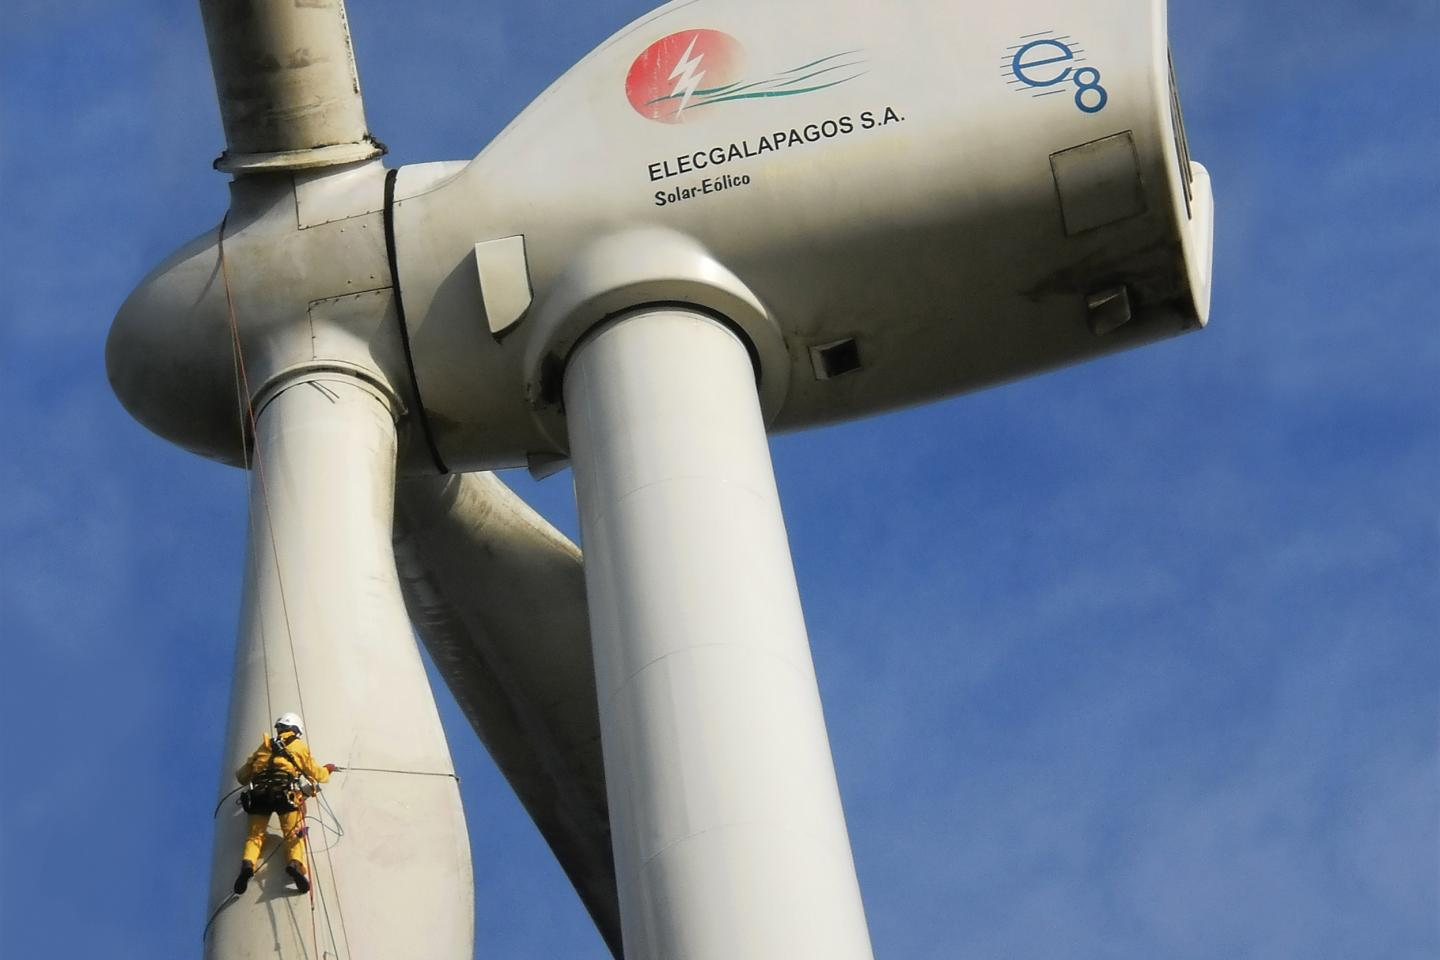 Workers clean the blades on a wind turbine on San Cristóbal Island in the Galapagos. The turbine provides 30 percent of the electricity consumed on San Cristóbal, replacing 2.3 million gallons of diesel fuel and avoiding 21,000 tons of carbon dioxide emissions.